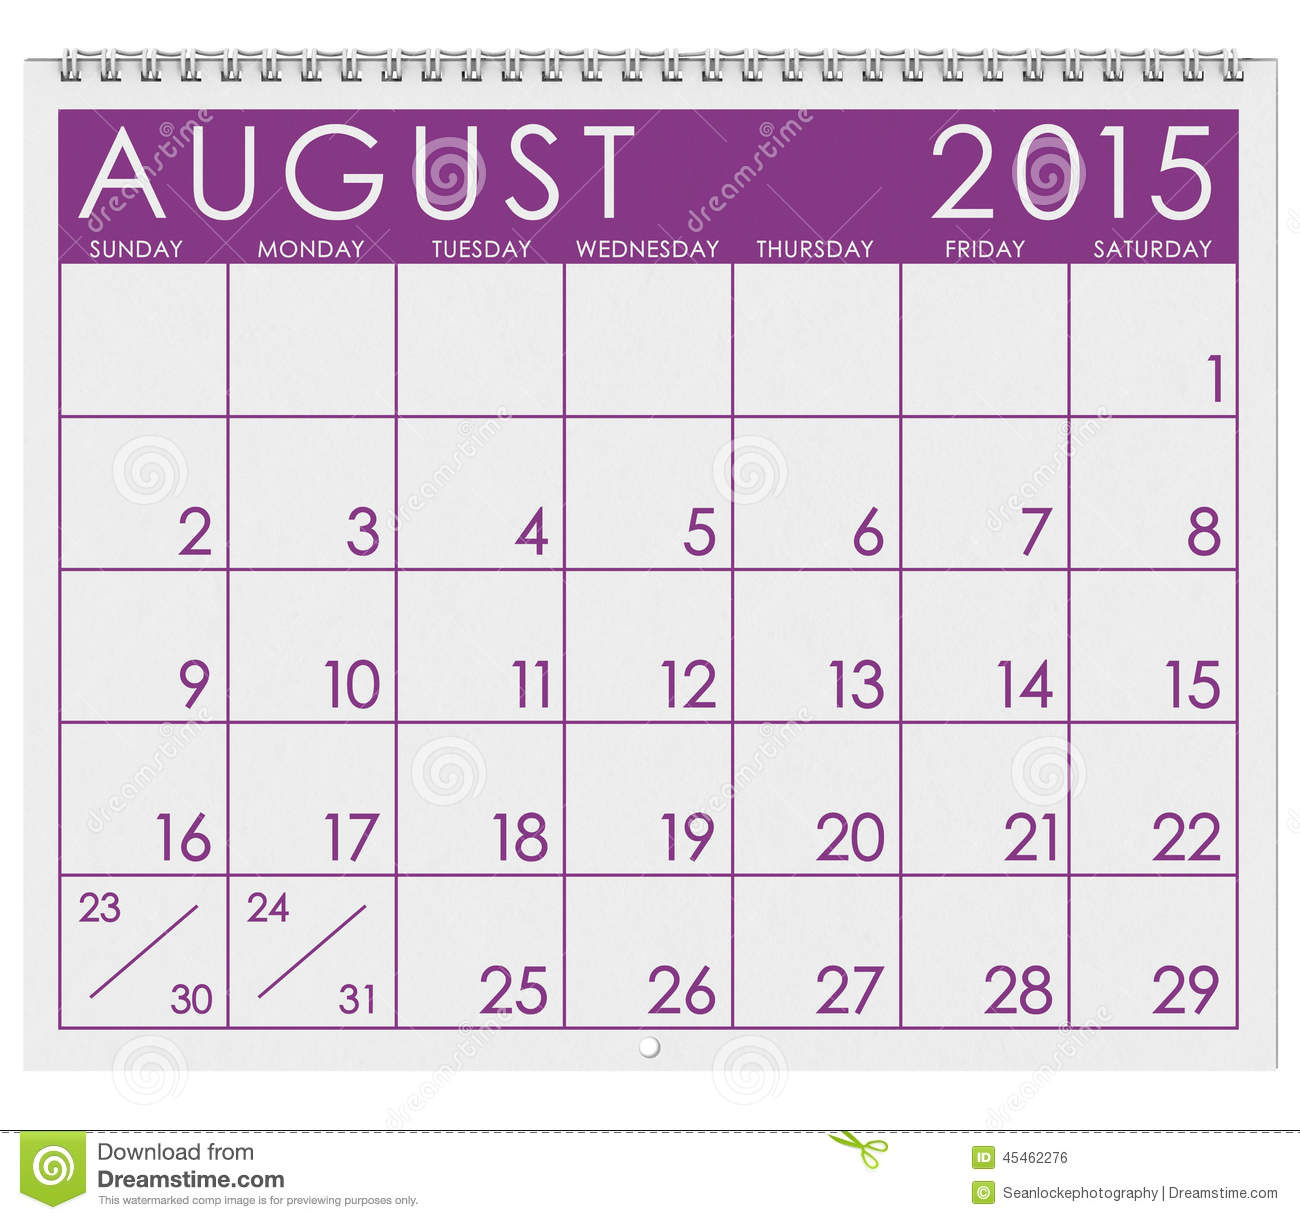 August 2015 calendar clipart.  month of stock